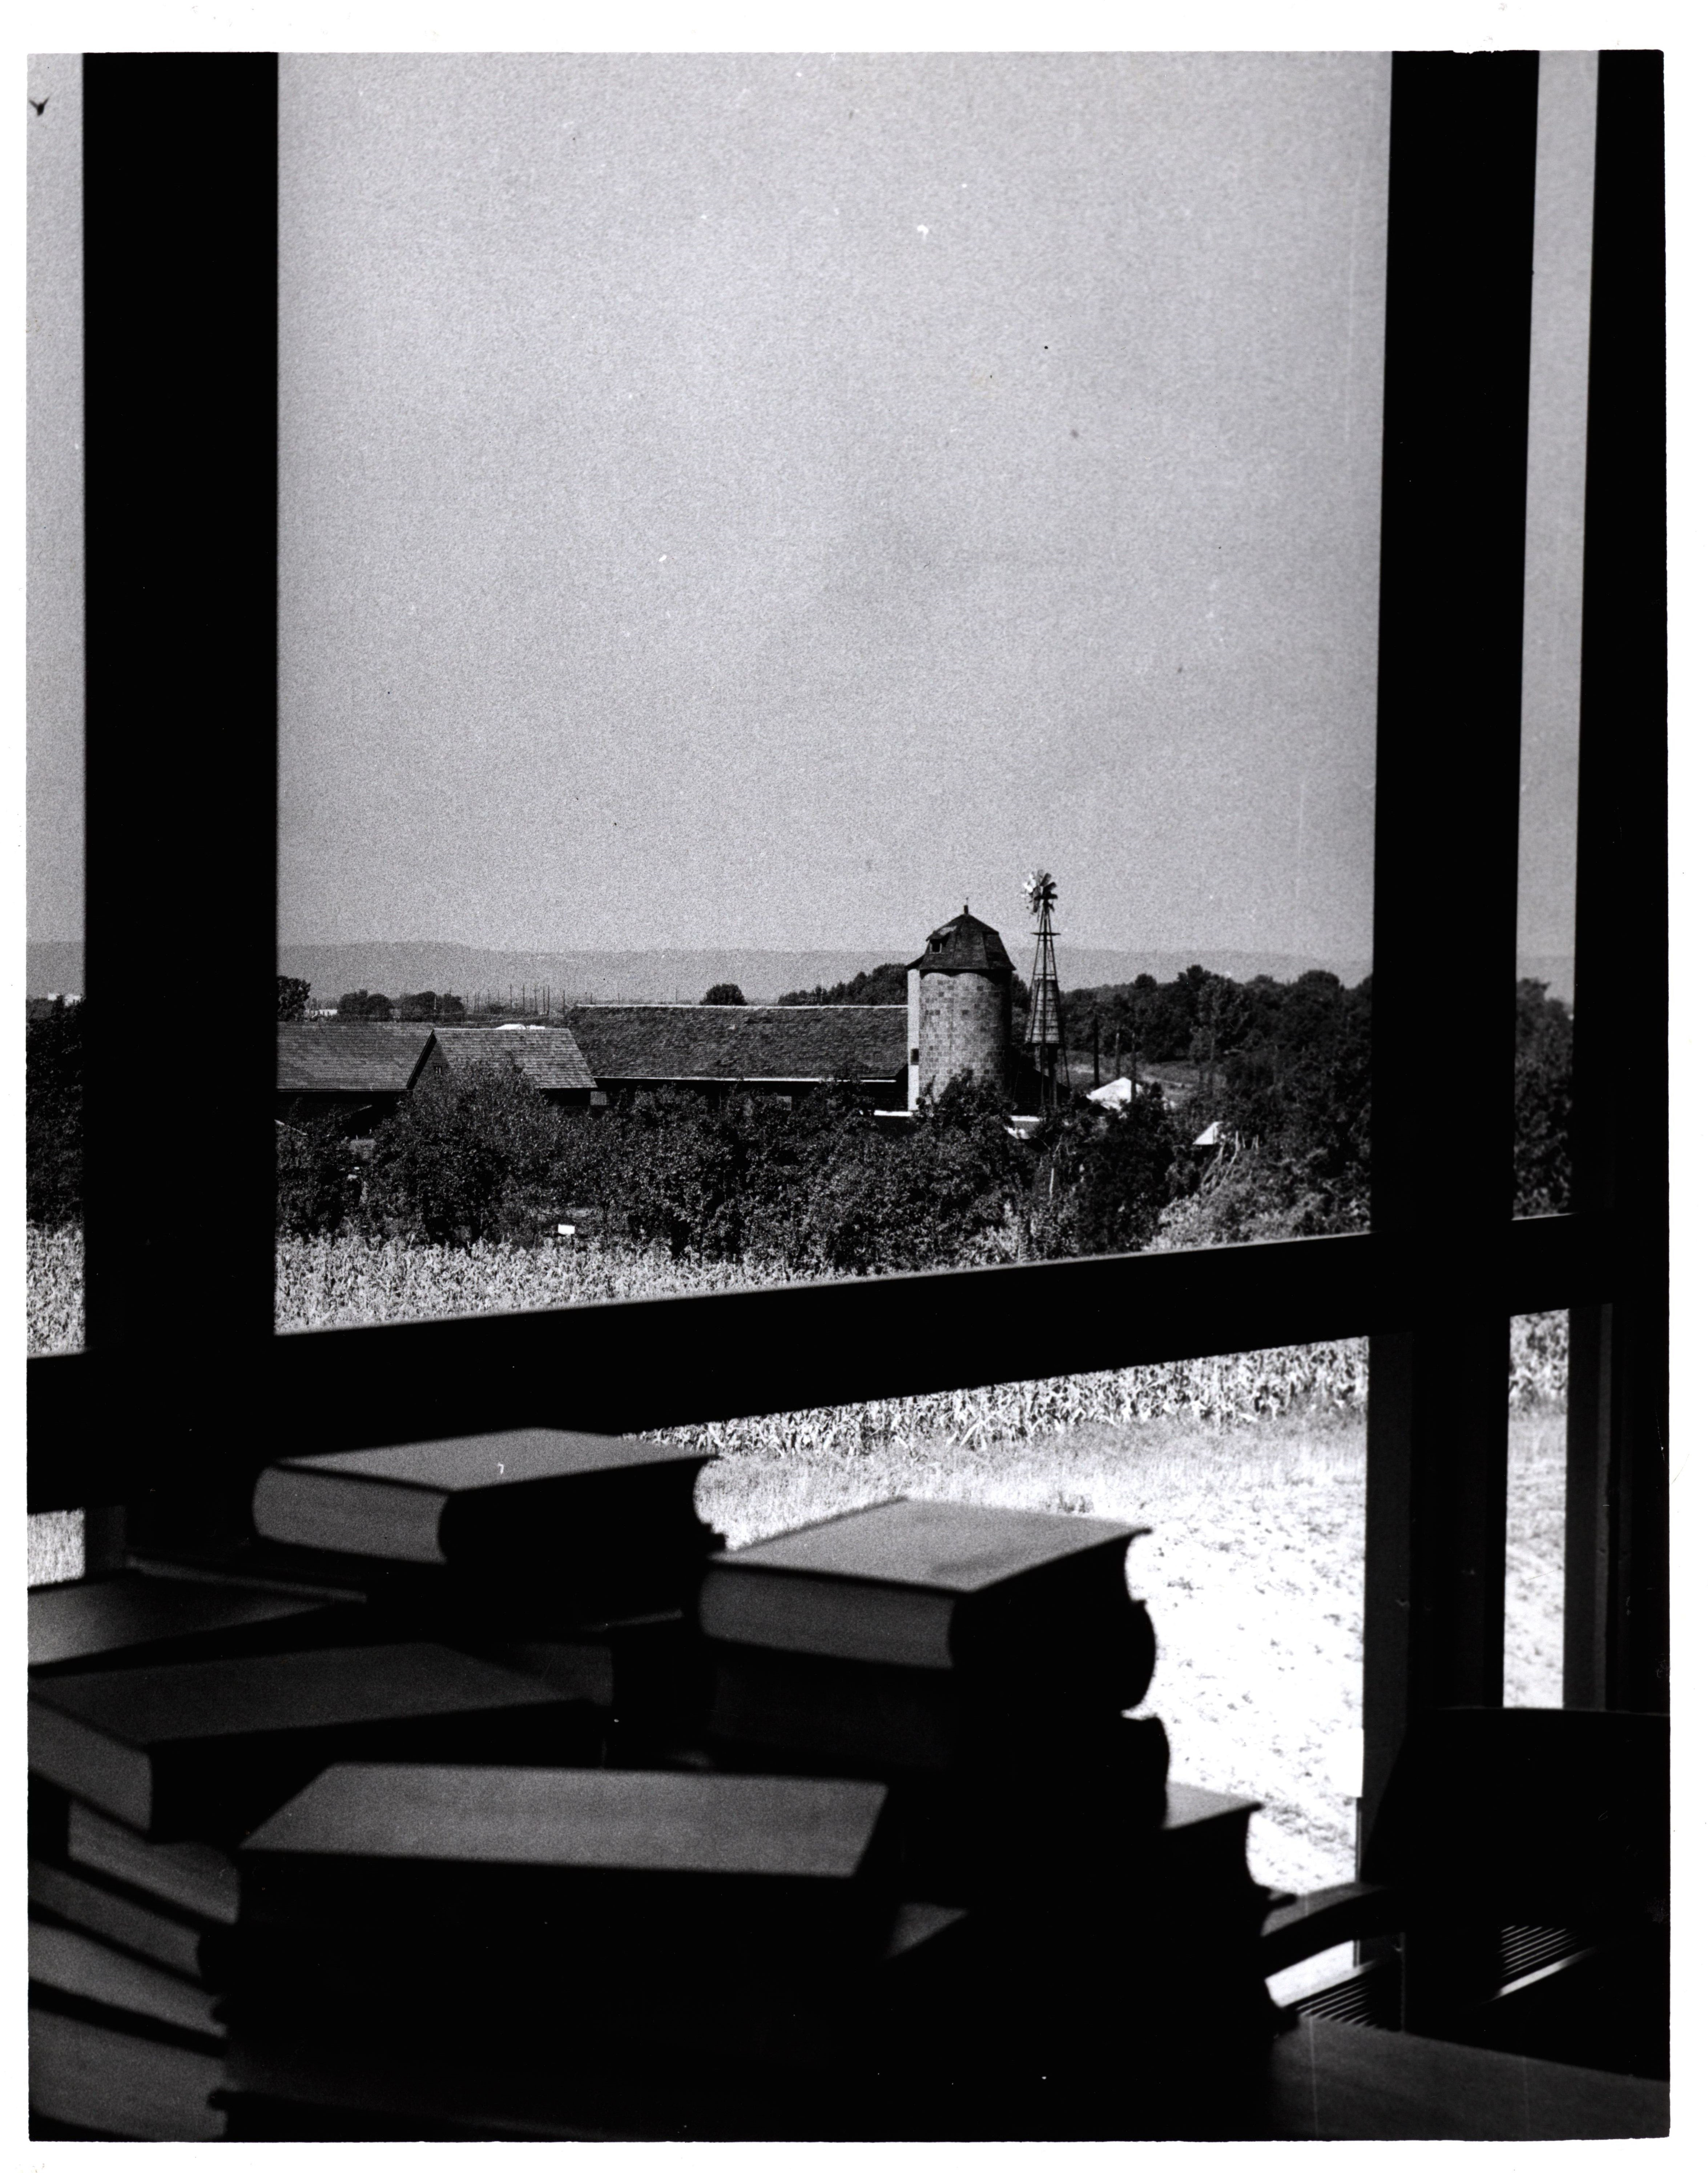 View from LSM window looking towards the farm, November 1970.